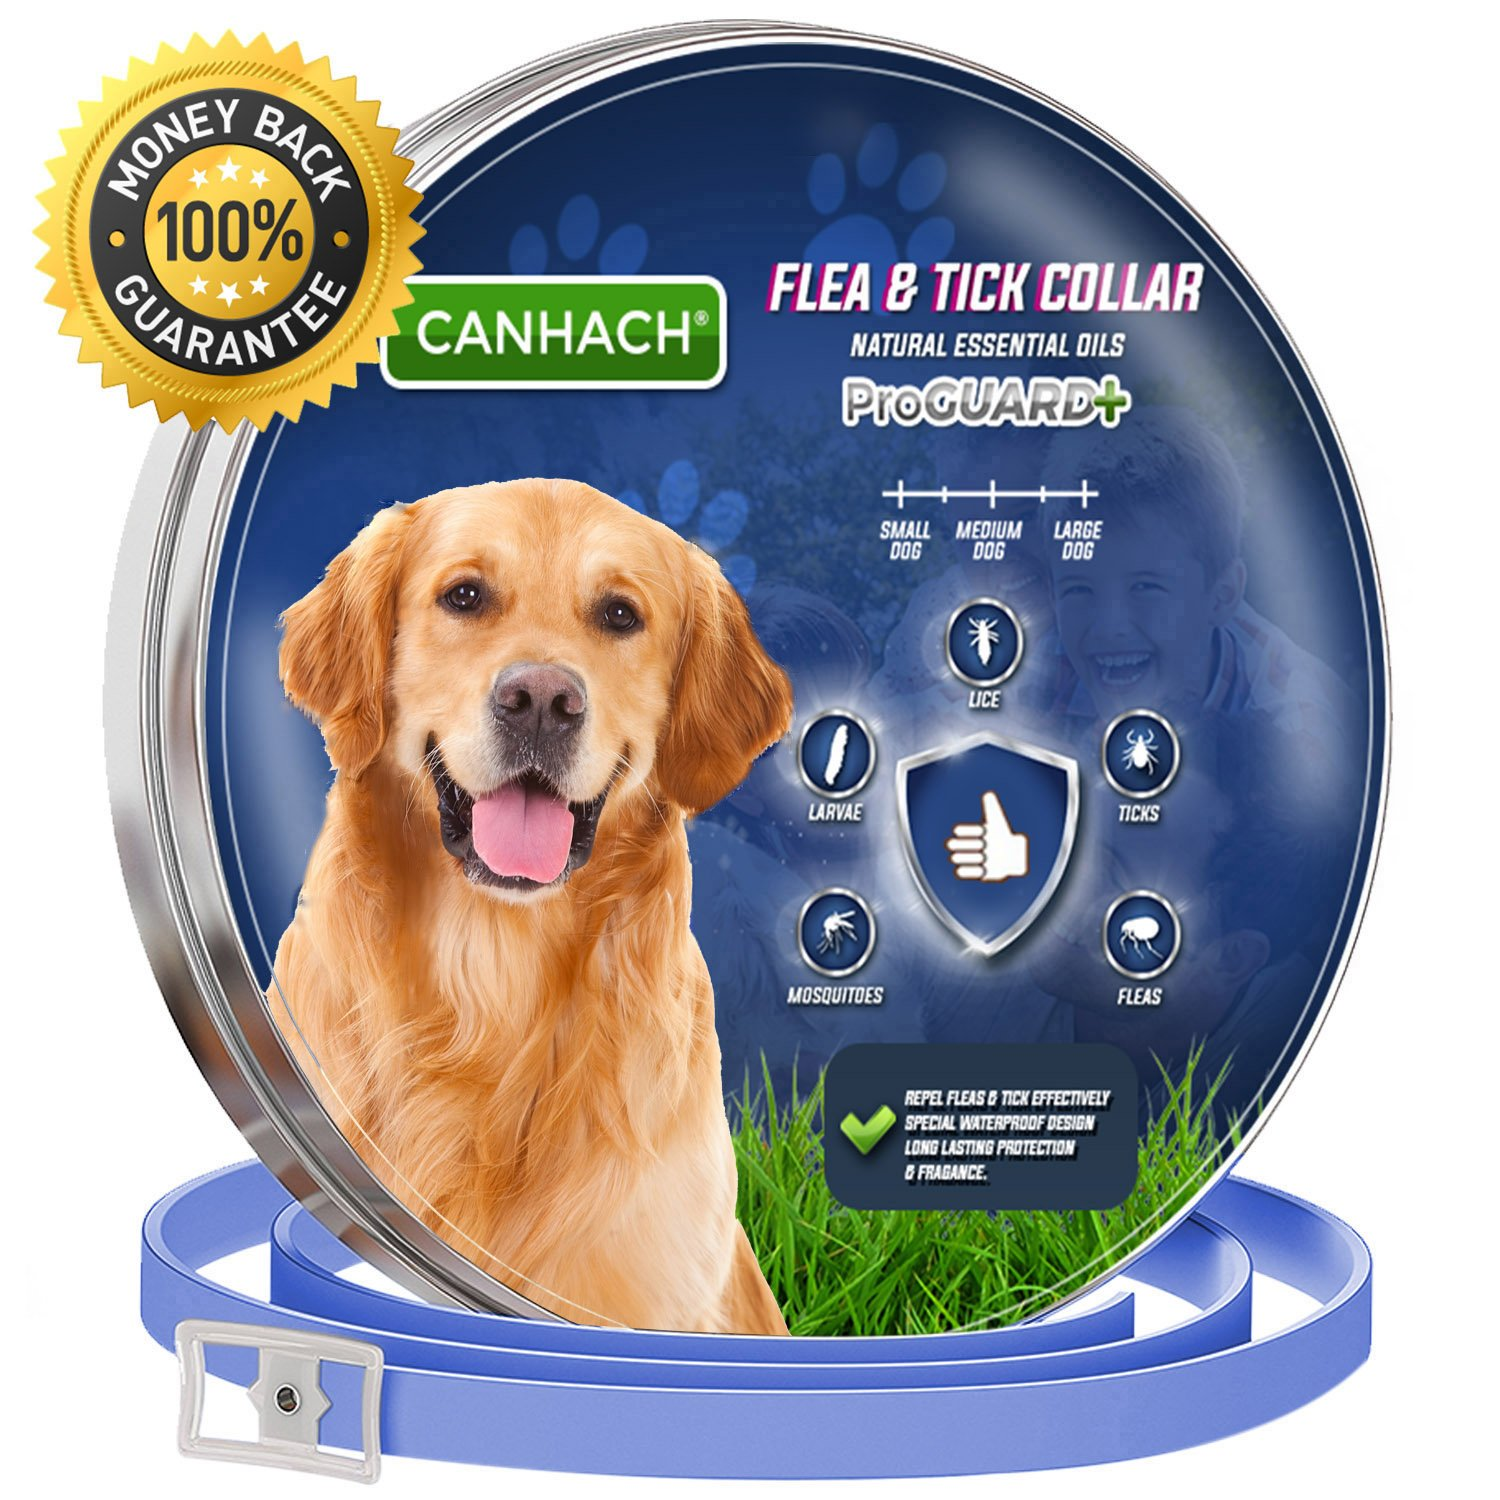 CANHACH Flea Collar for Dogs, Pet Essential Oil Control Collars Dogs Protection from Many Species of Insects. Enhanced with Natural Essential Oil S,M,L Dogs